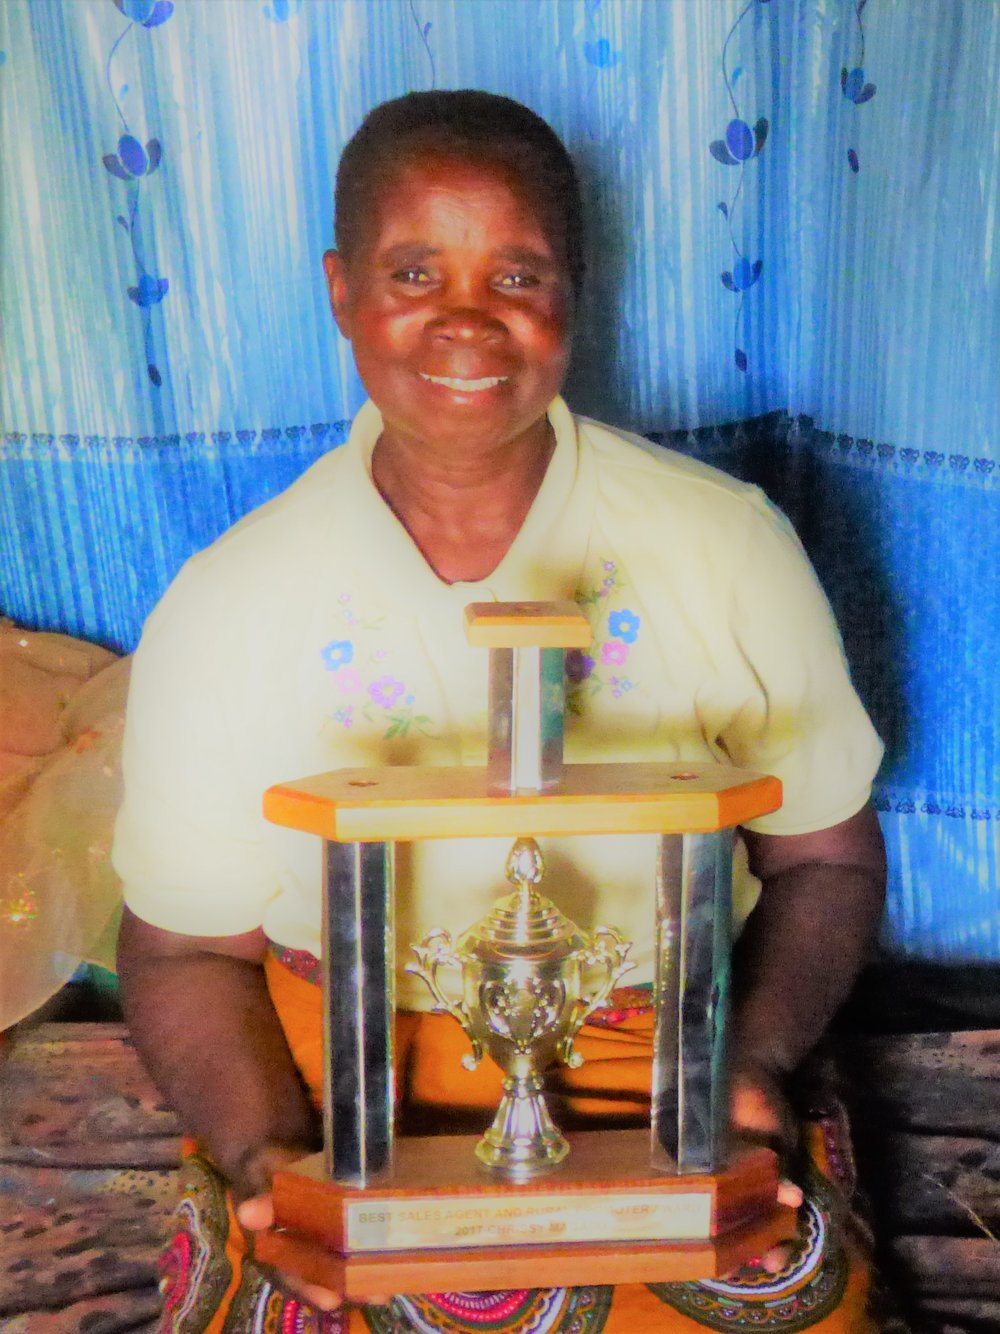 Above: Chrissy, pictured with her award for selling the most stoves in the country